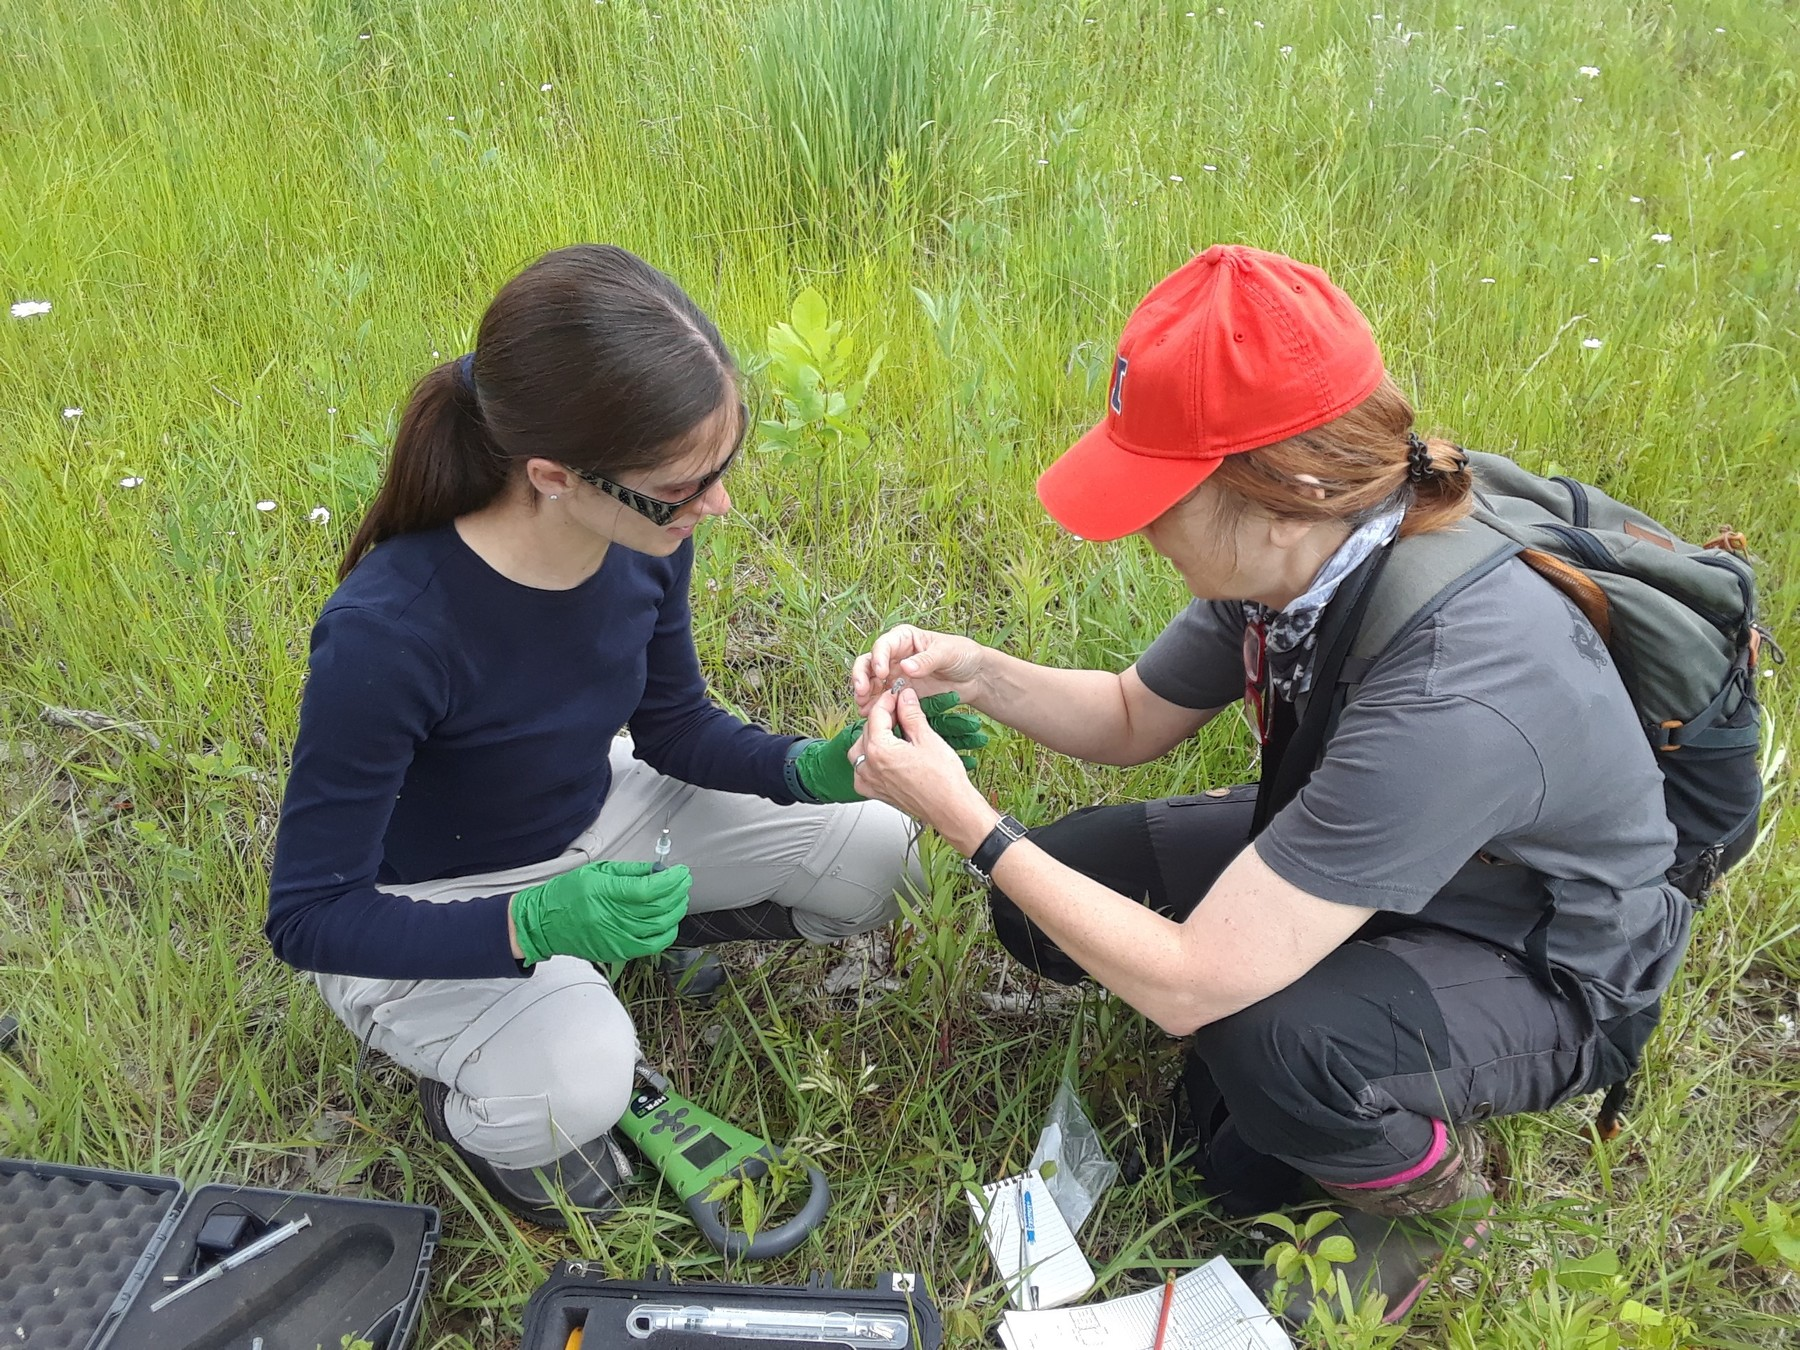 Dr. Jelka Crnobrnja-Isailovic and Jaclyn Adams working with a snake in a field of grass